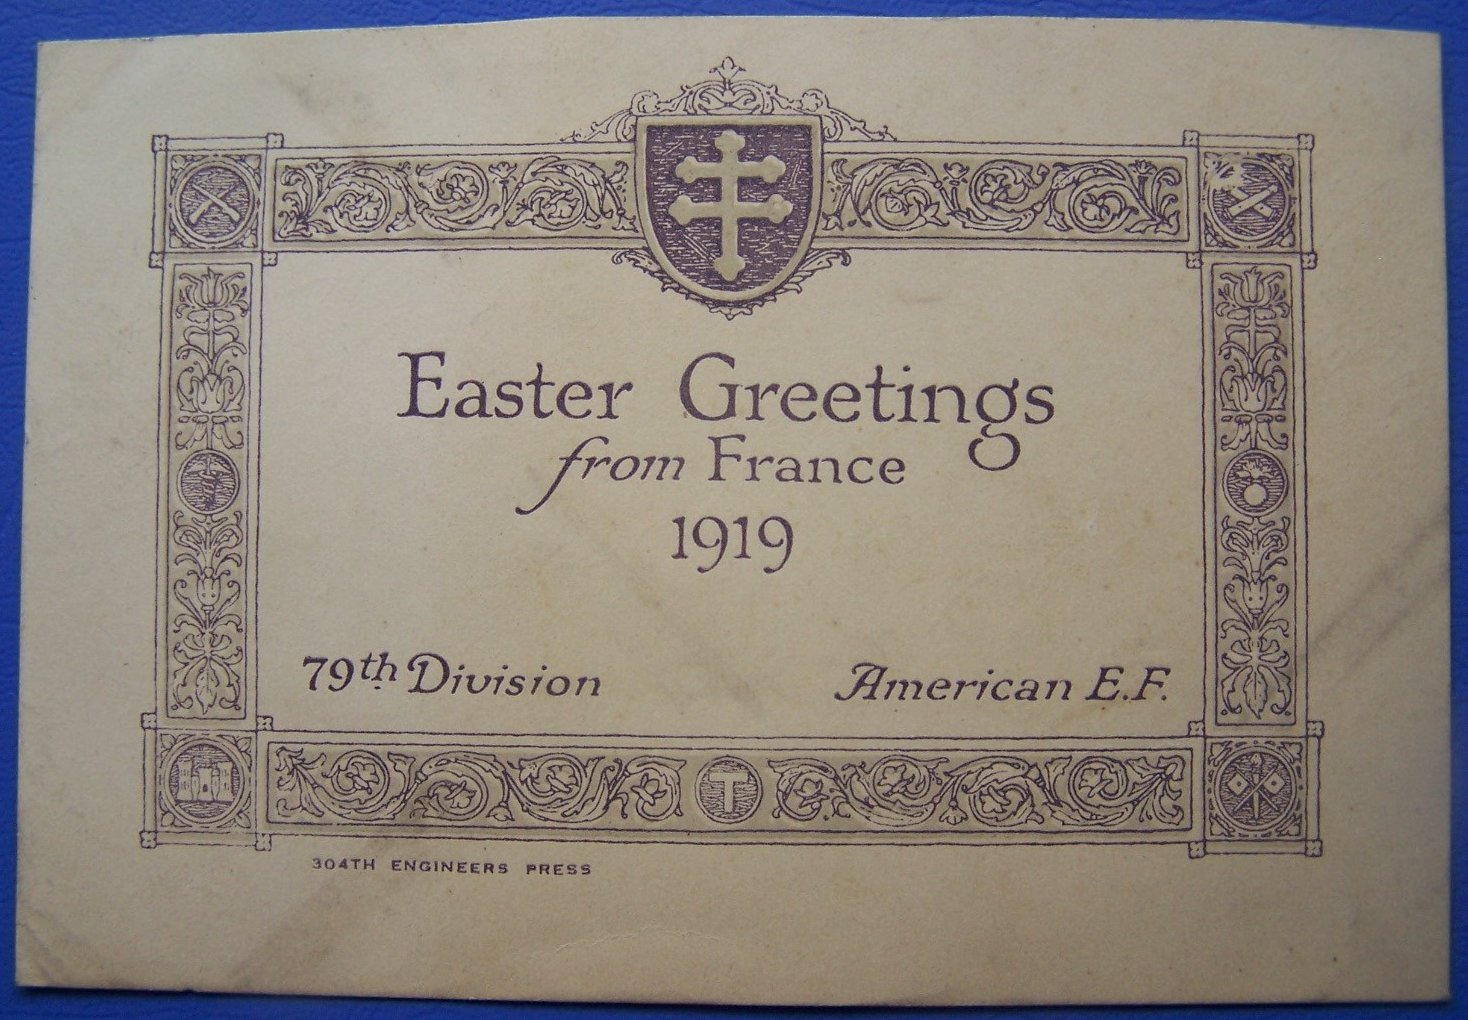 Easter Greetings from France April 1919 - front